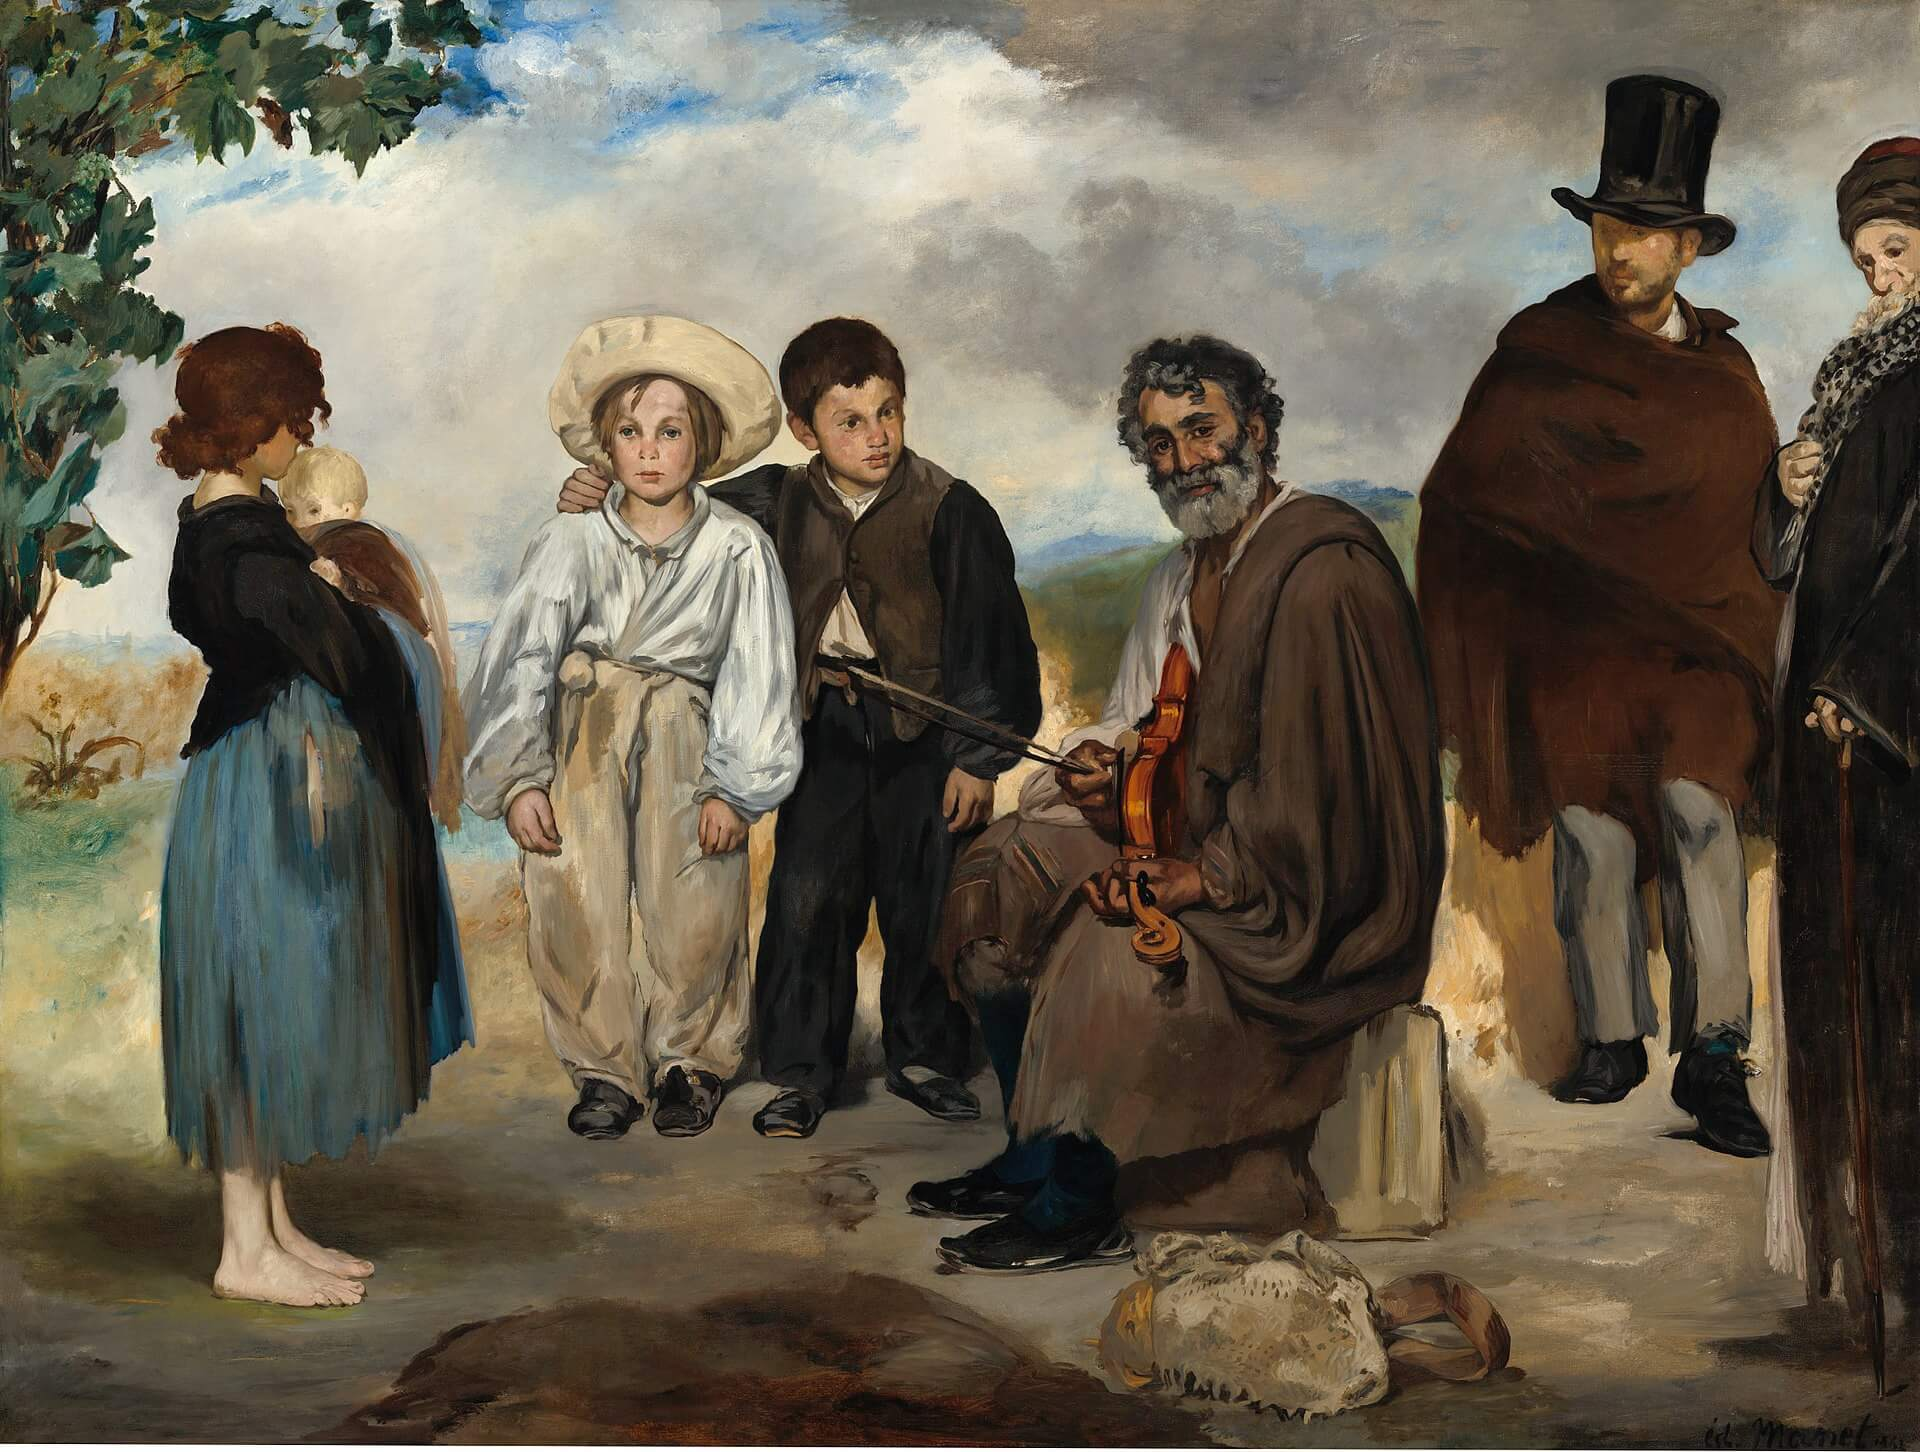 Édouard Manet, The Old Musician, 1862, oil on canvas, 73.8 in × 97.8 inches (National Gallery of Art, Washington, D.C.)